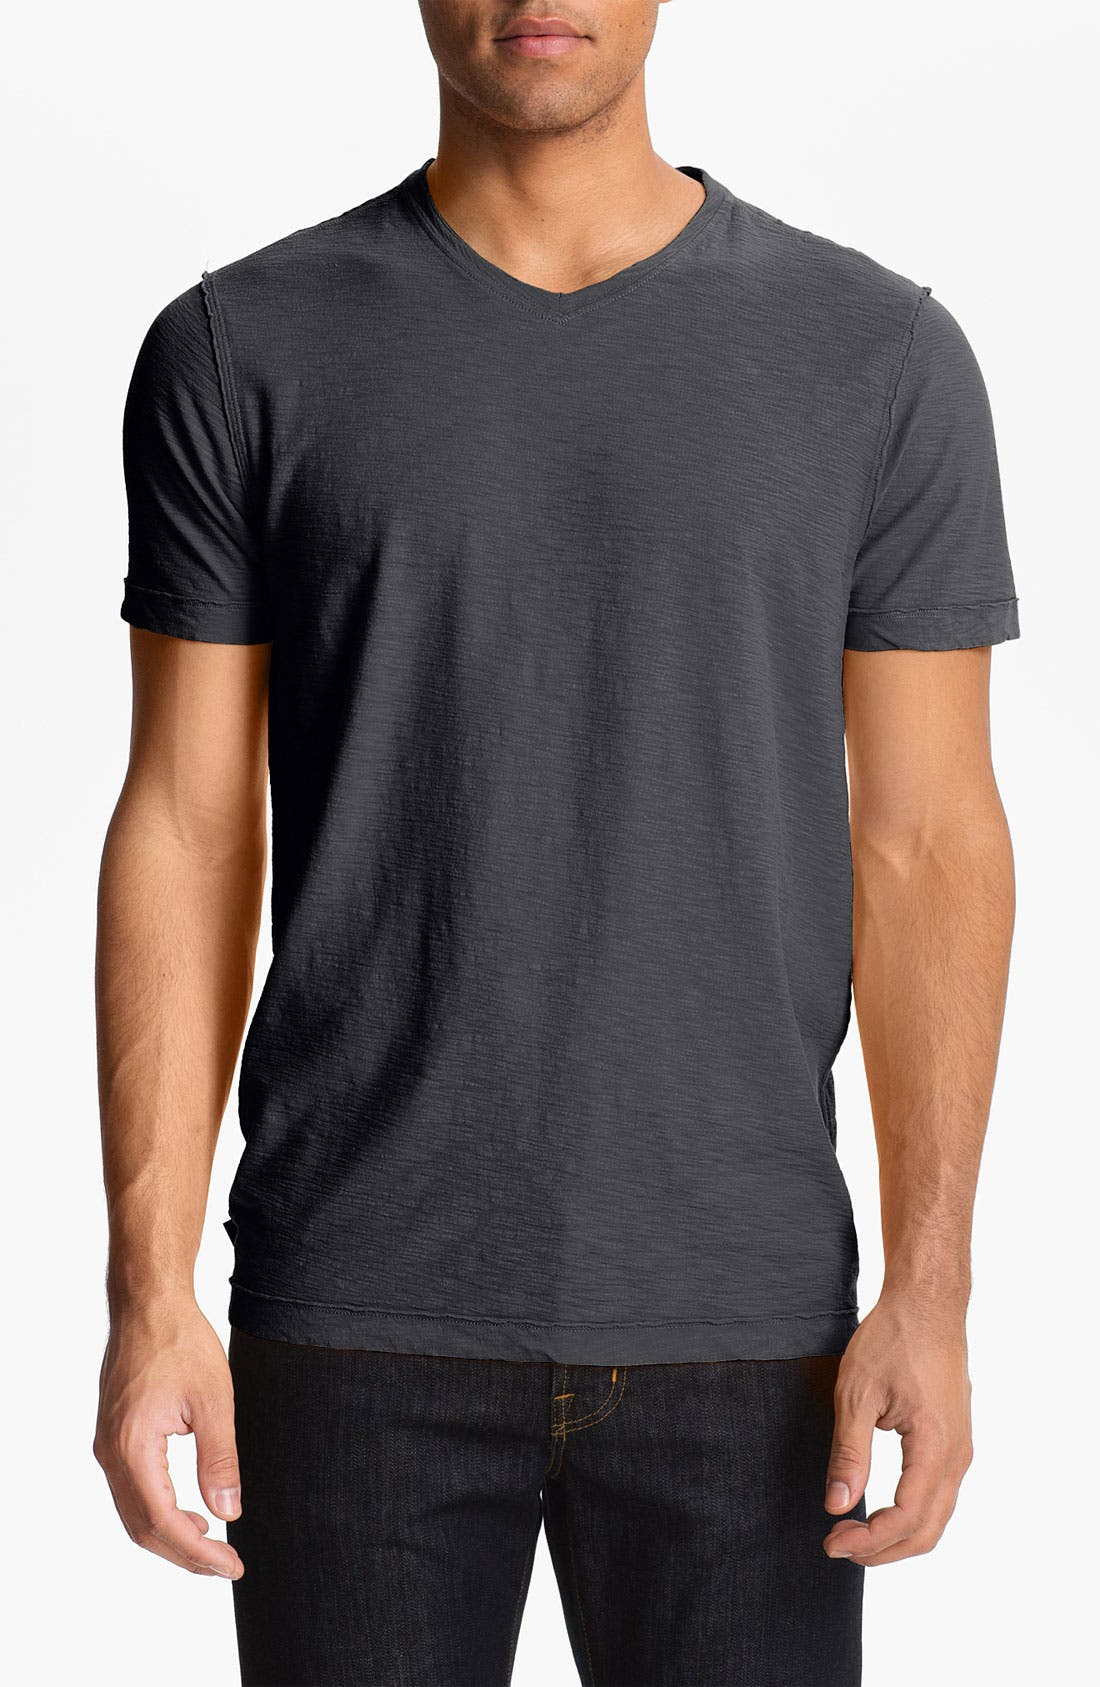 Alternate Image 1 Selected - Cutter & Buck 'Arbor Heights' V-Neck T-Shirt (Big & Tall)